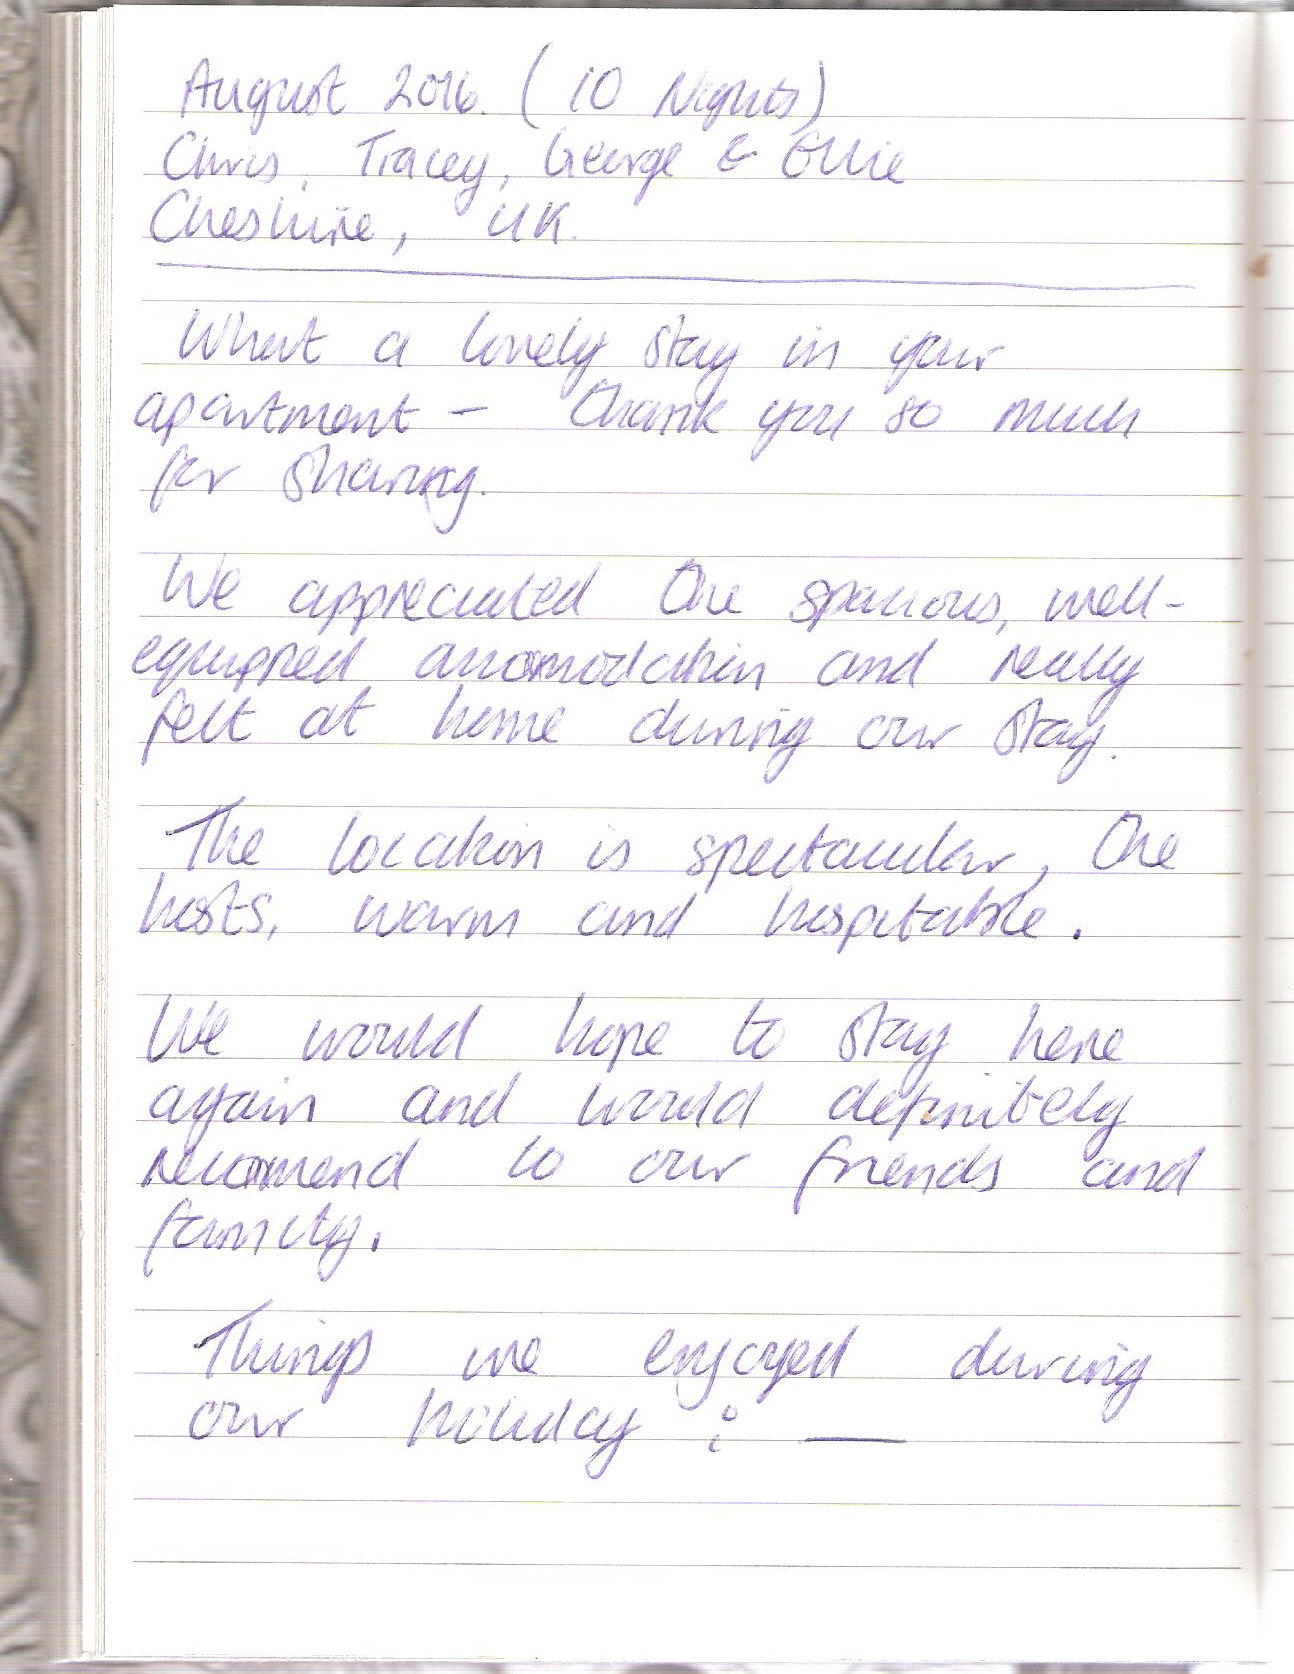 guestbook-page-058